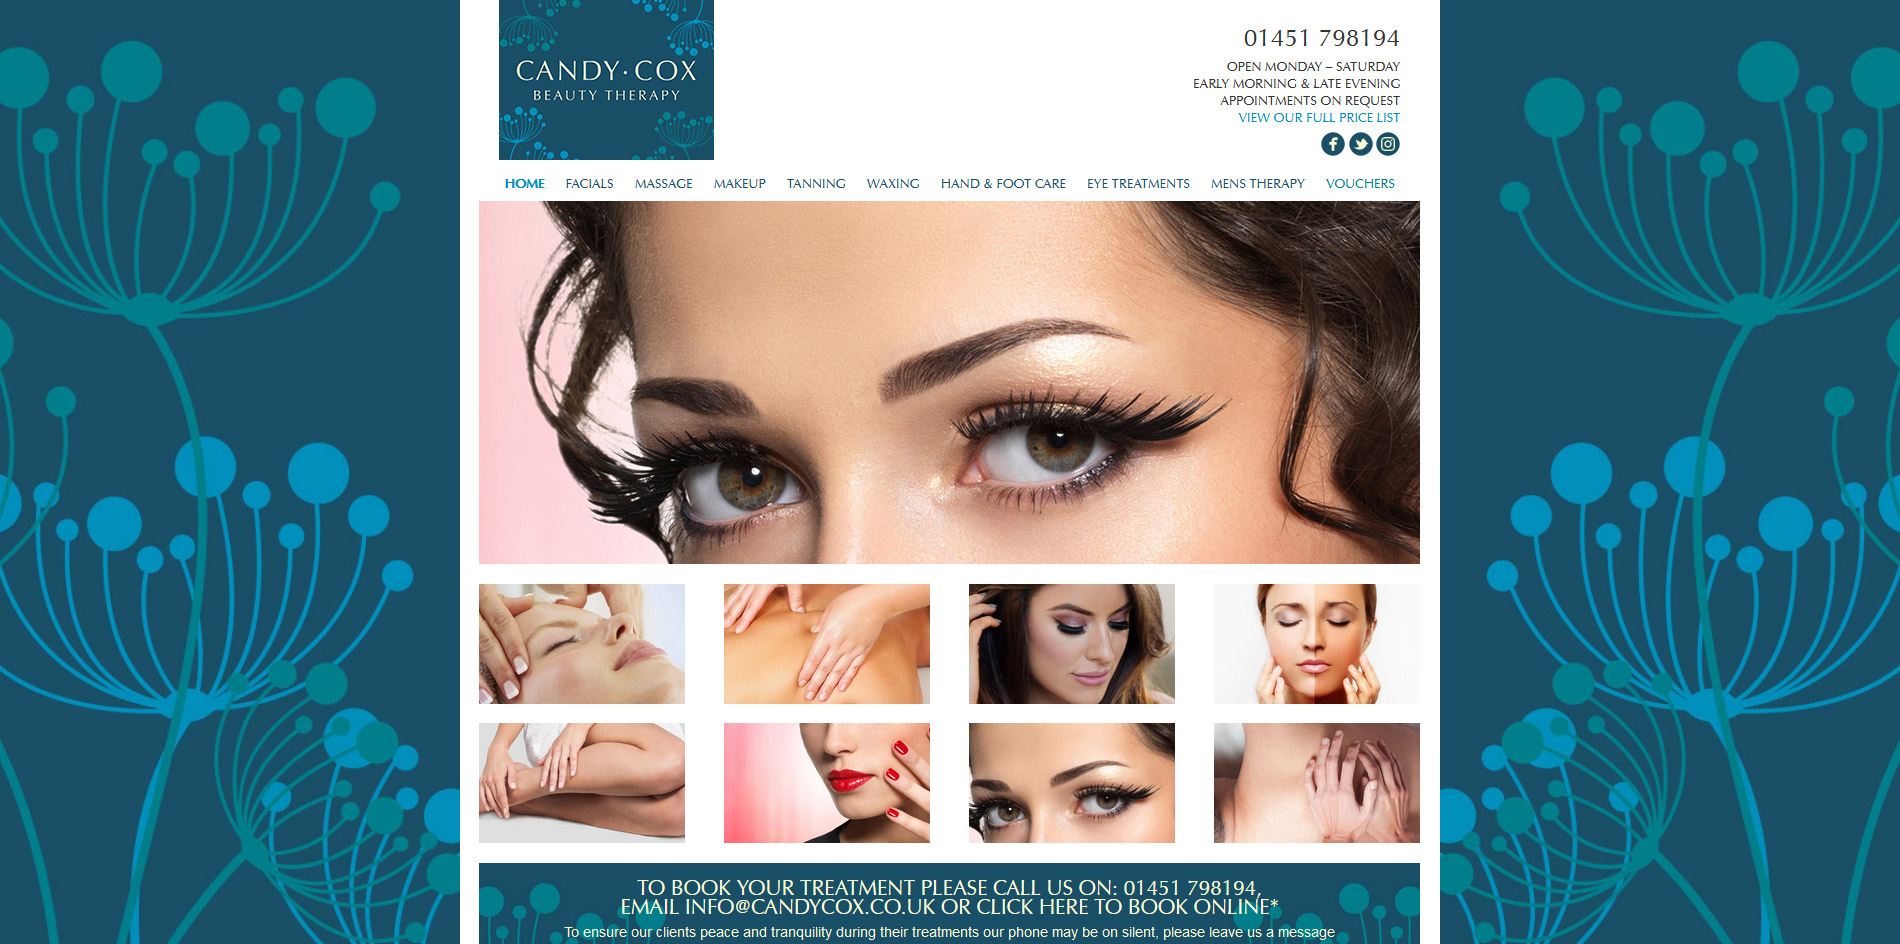 Candy Cox Beauty Therapy Website